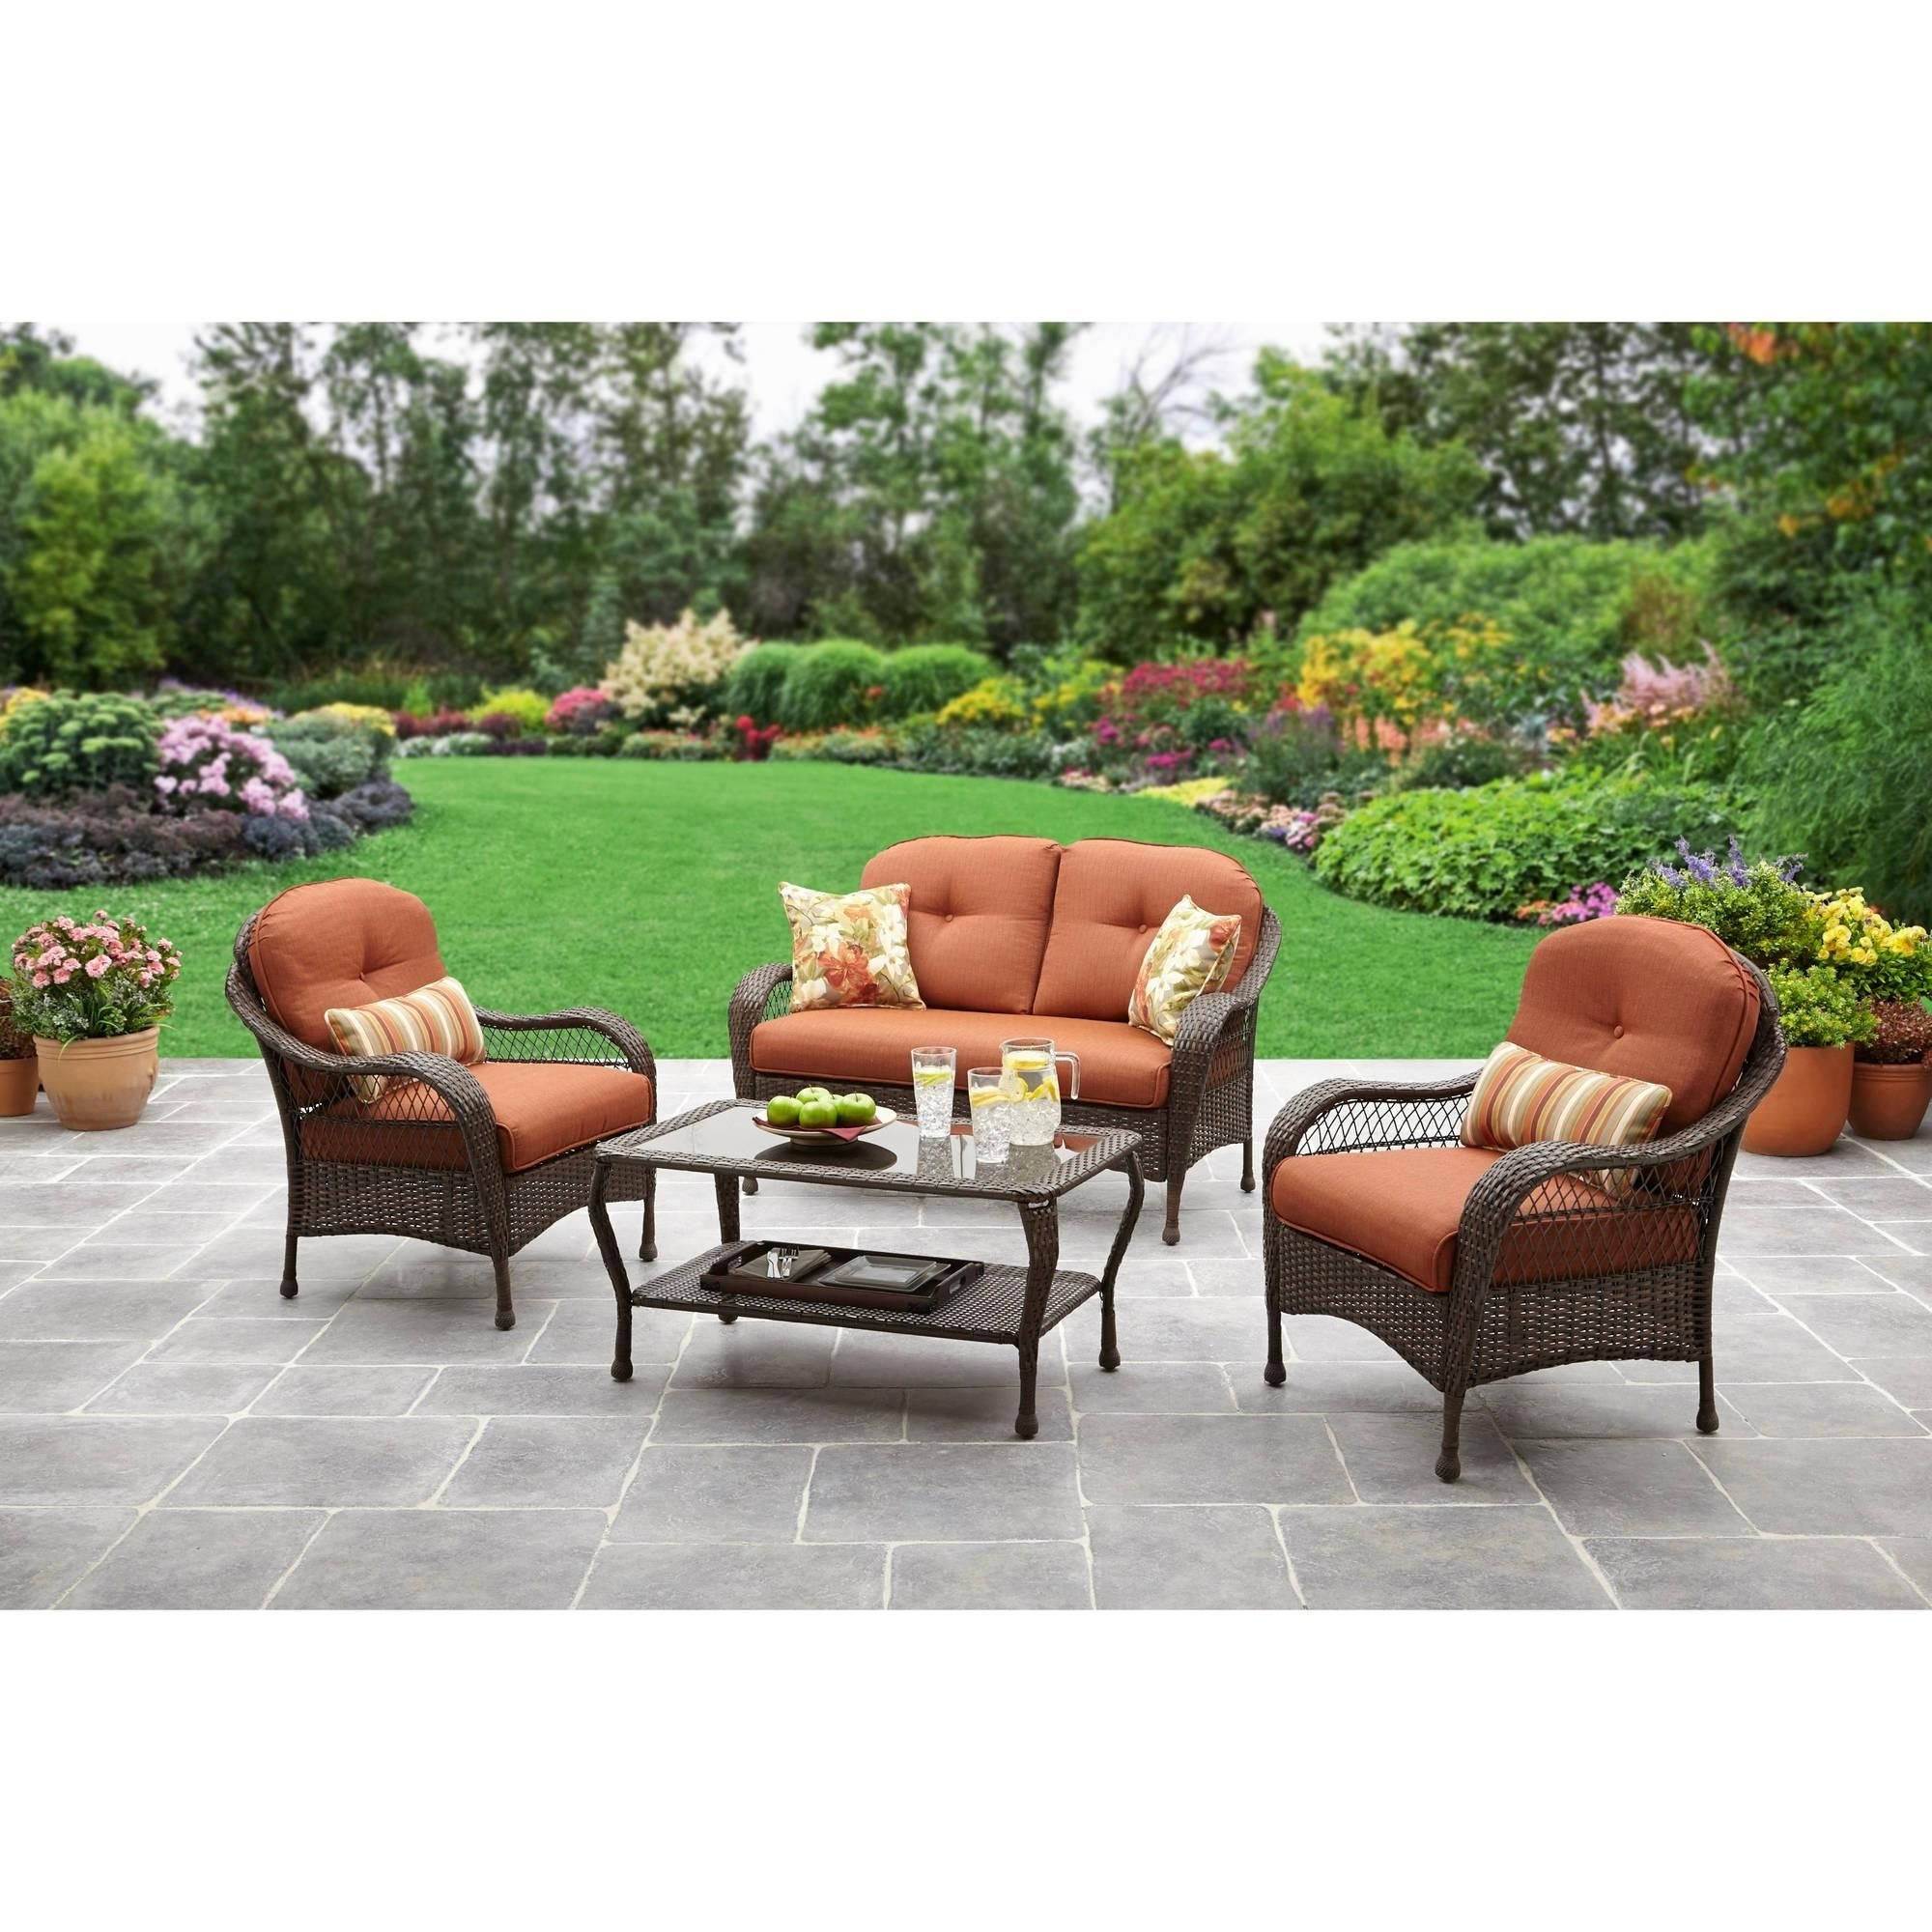 Walmart Patio Furniture Conversation Sets For Most Up To Date Replacement Cushions For Outdoor Furniture Walmart – Best Spray (View 13 of 15)